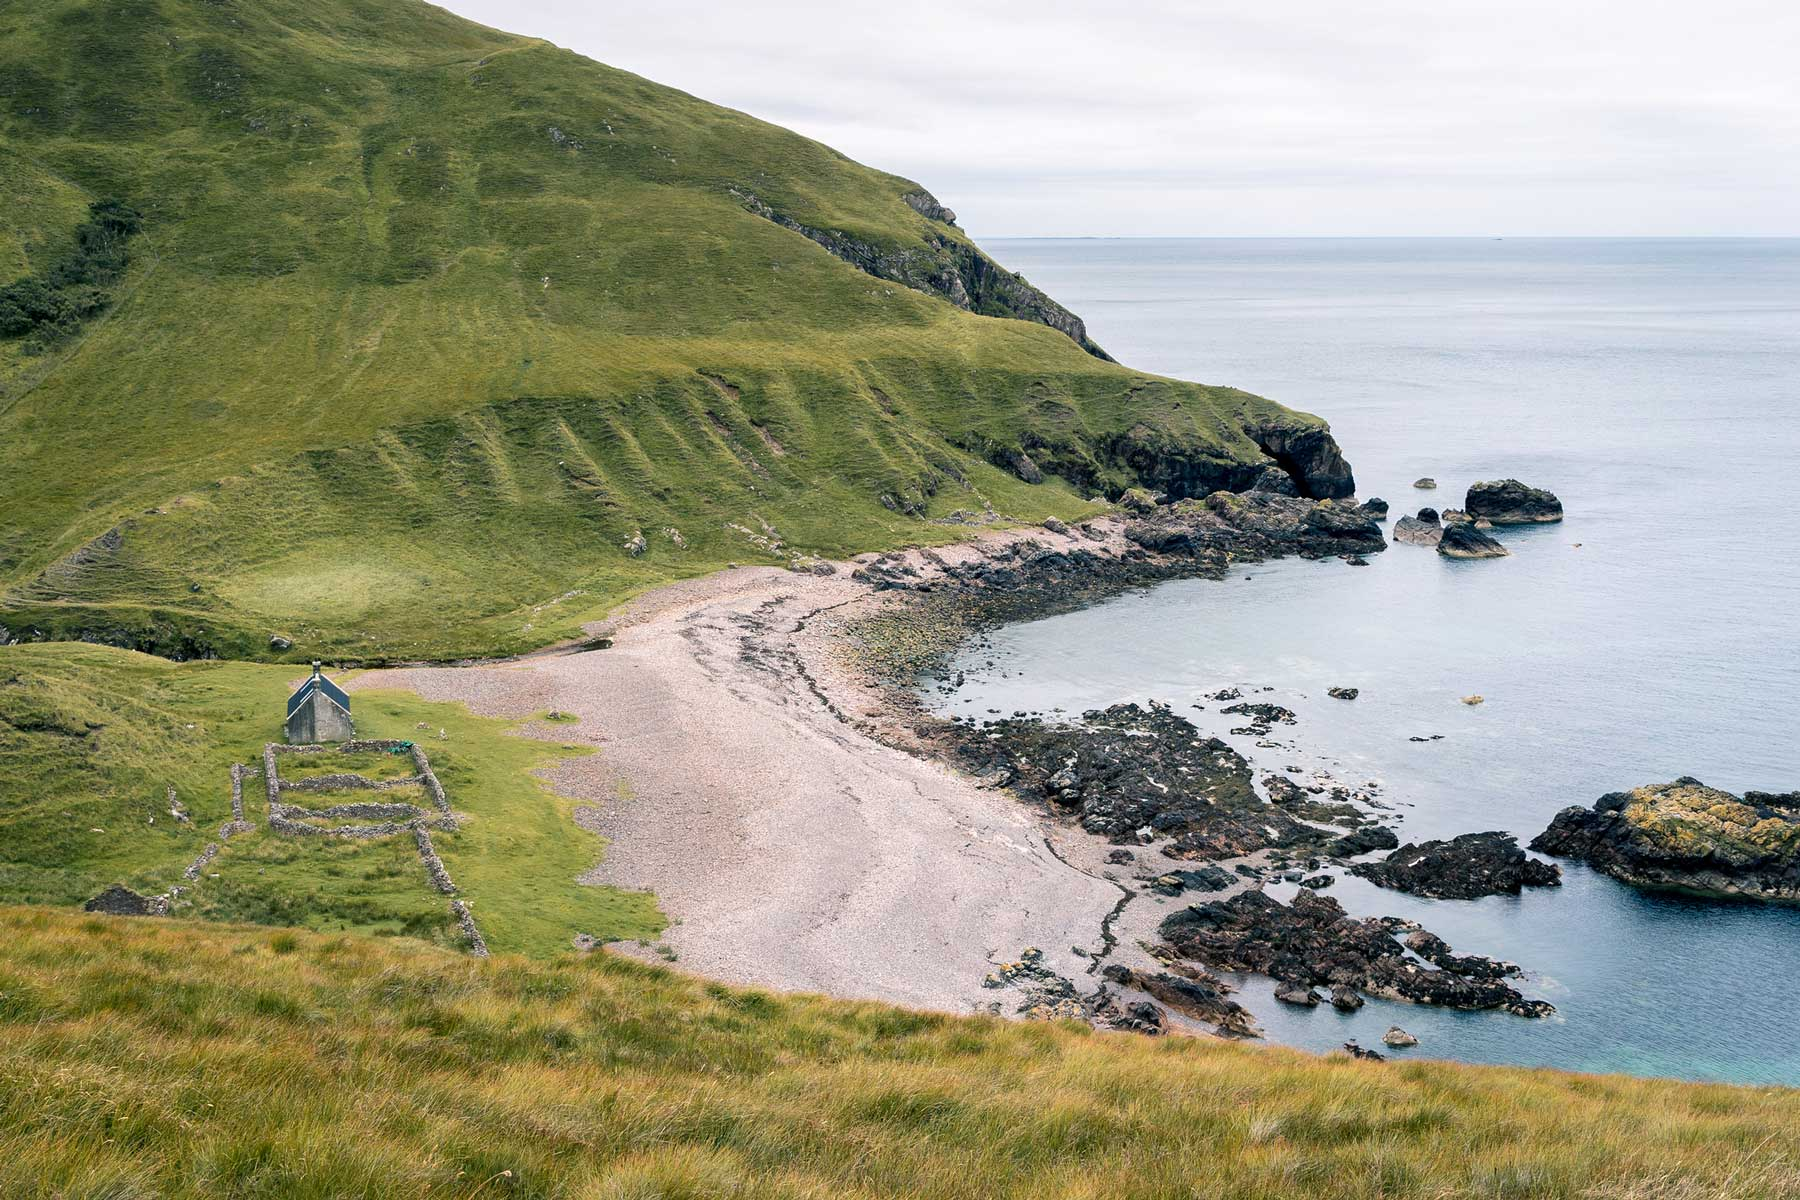 The Guirdil bothy at the western coastline of the Isle of Rum, a small island at the West Coast of Scotland